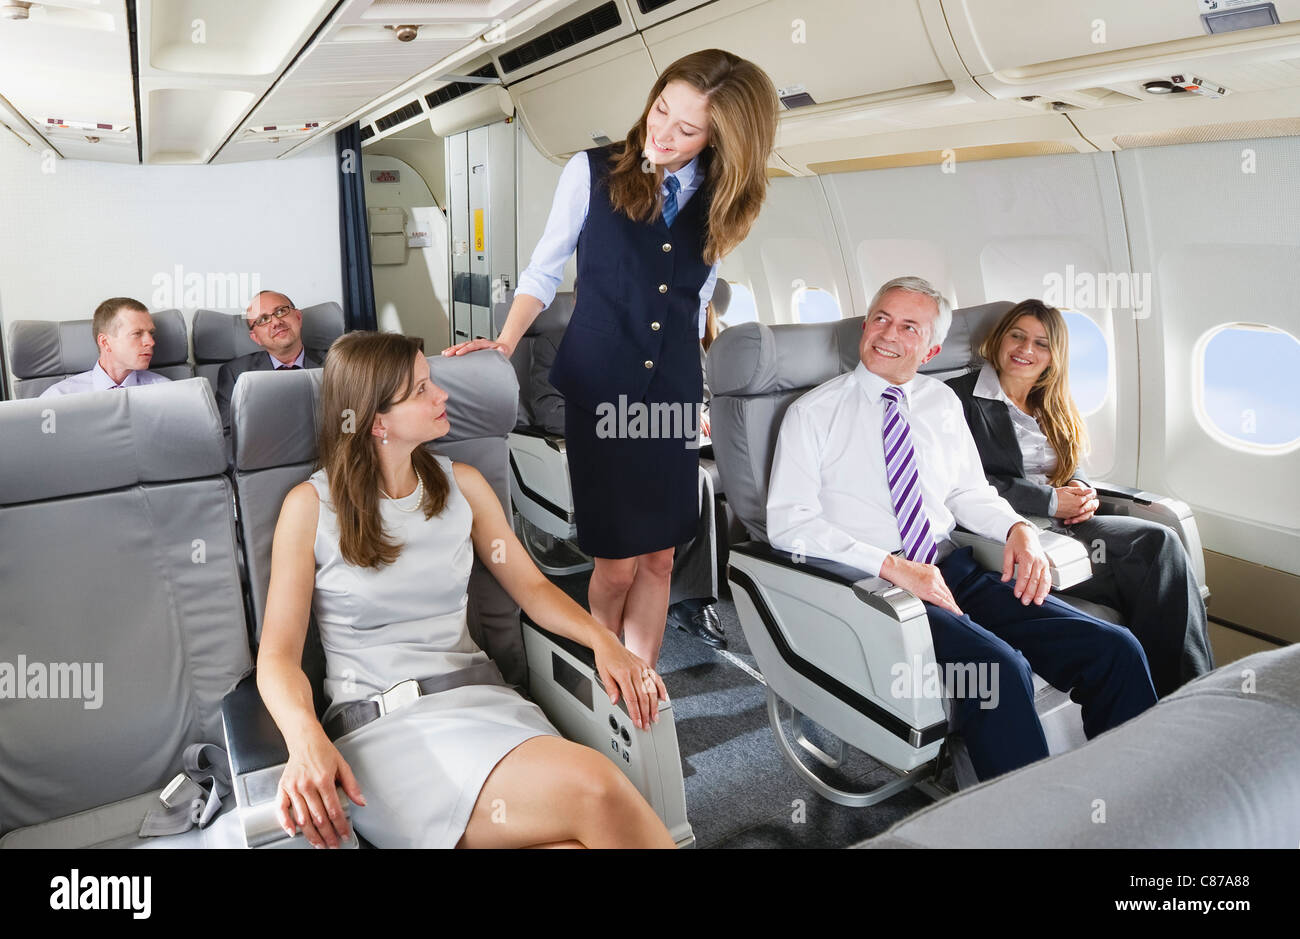 Germany, Bavaria, Munich, Stewardess and passengers in business class airplane cabin, smiling - Stock Image